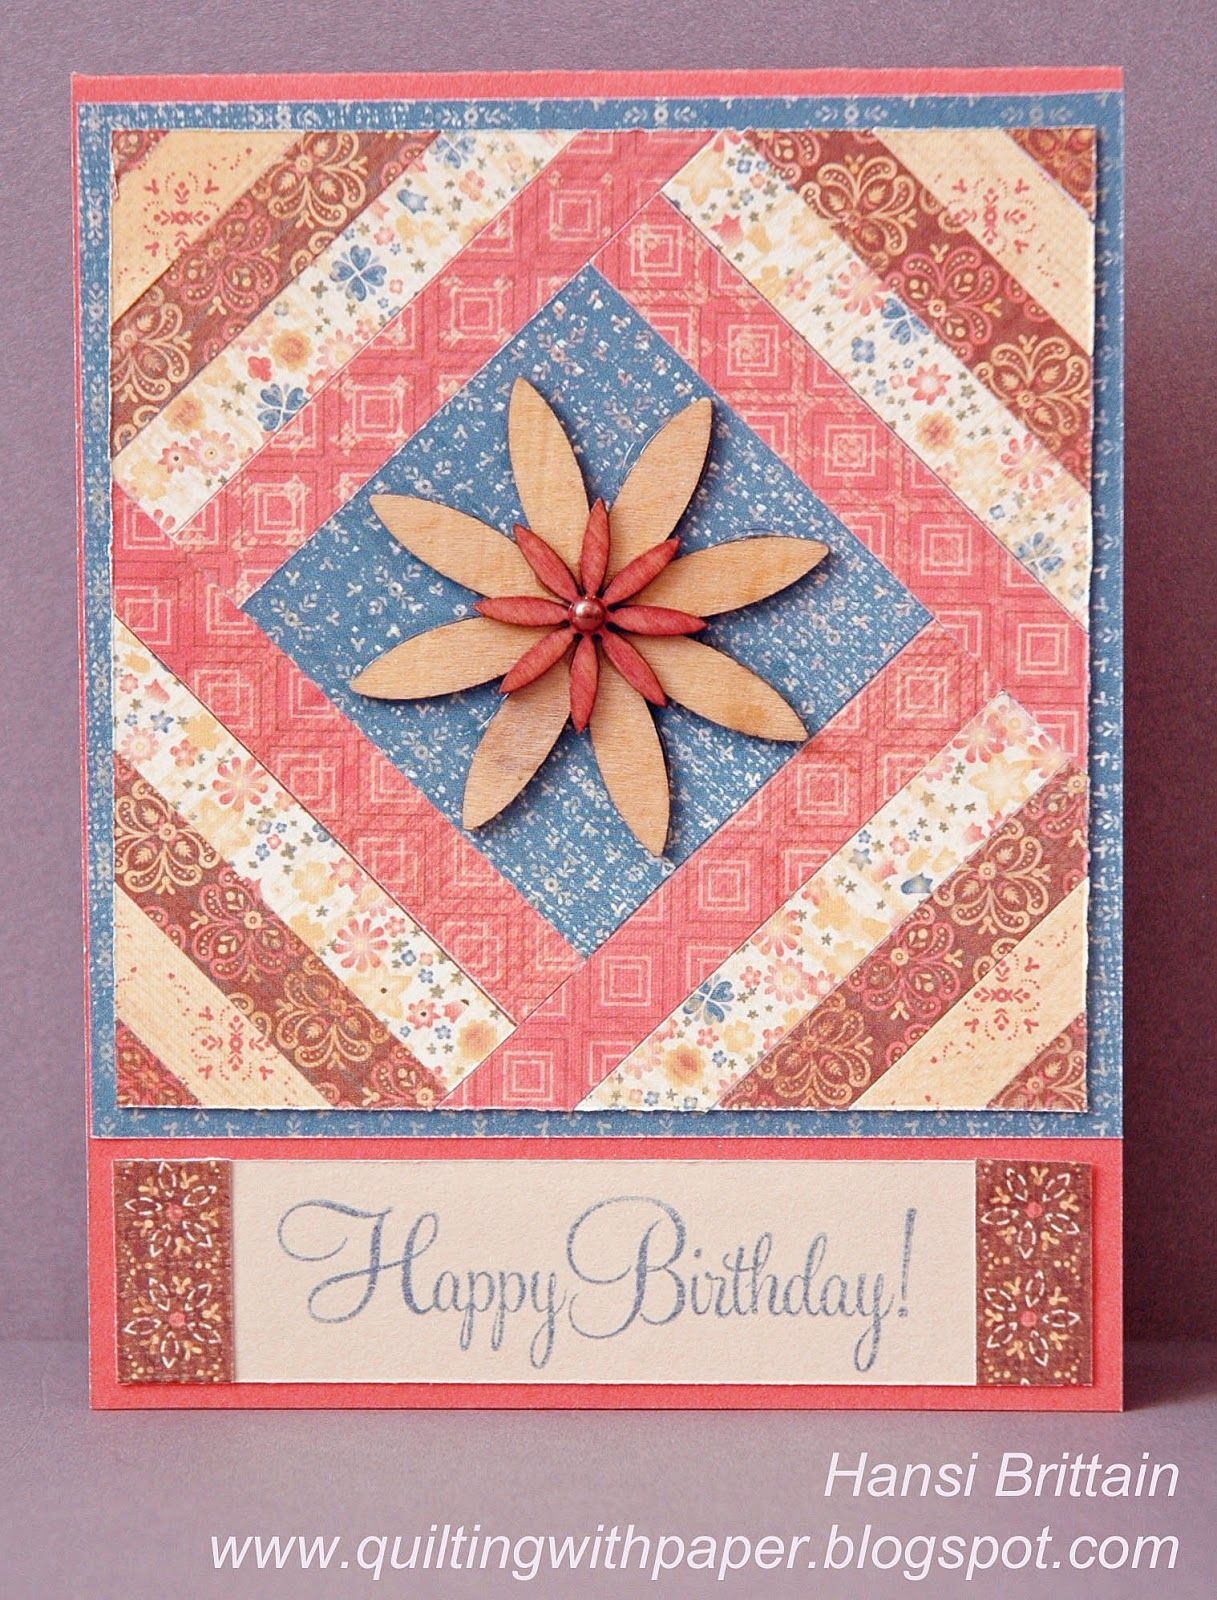 Quilting With Paper: A Paper Quilt for Spring  Patchwork cards